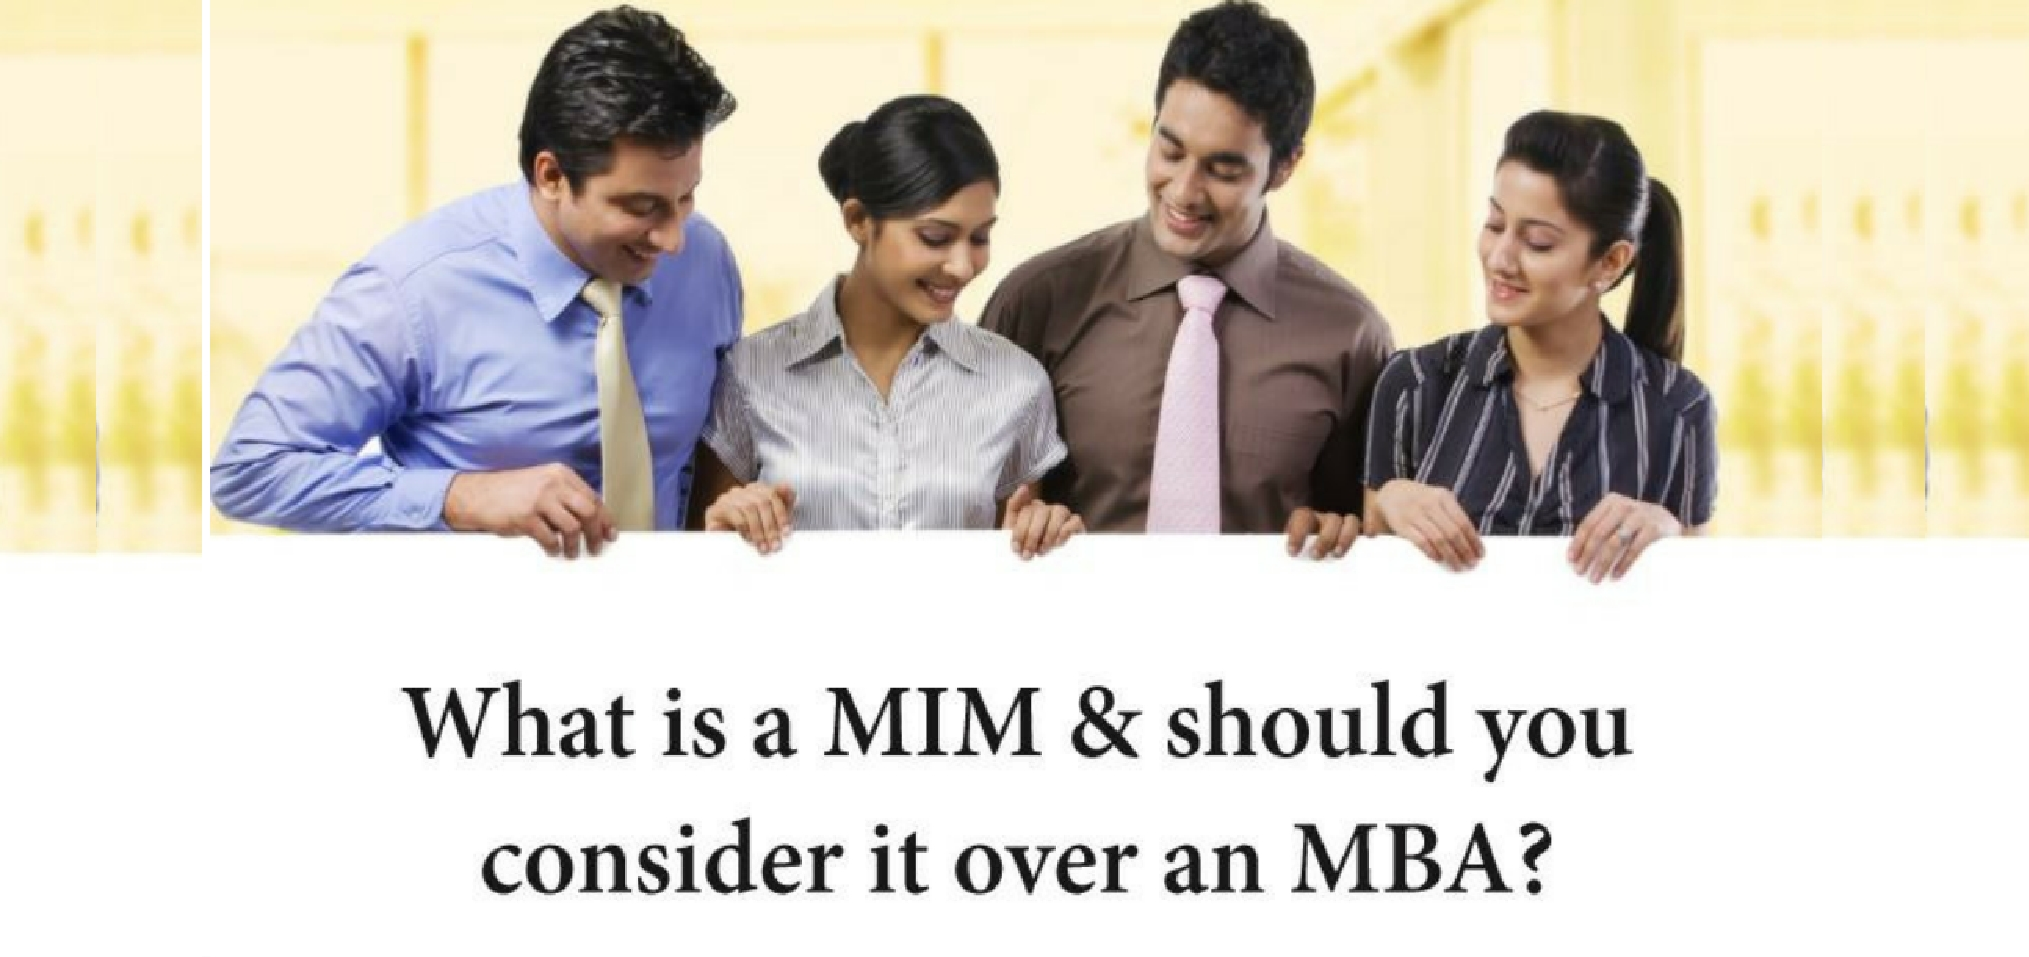 what is a mim should you consider it over an mba jamboree what is a mim should you consider it over an mba